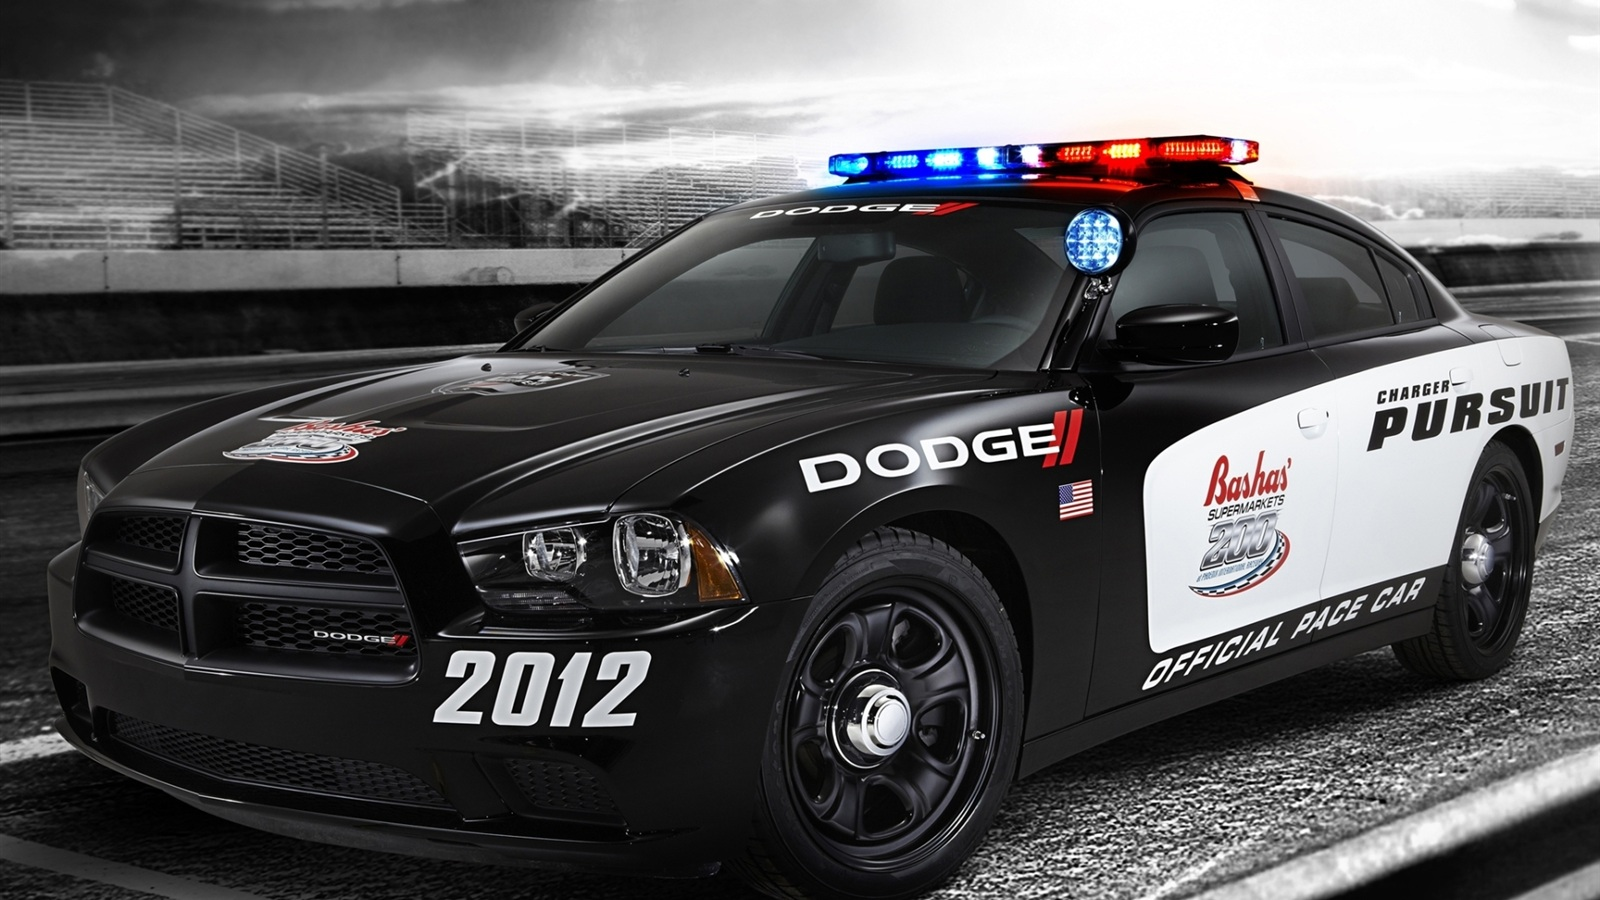 Wallpaper Dodge Police Car 1920x1200 Hd Picture Image